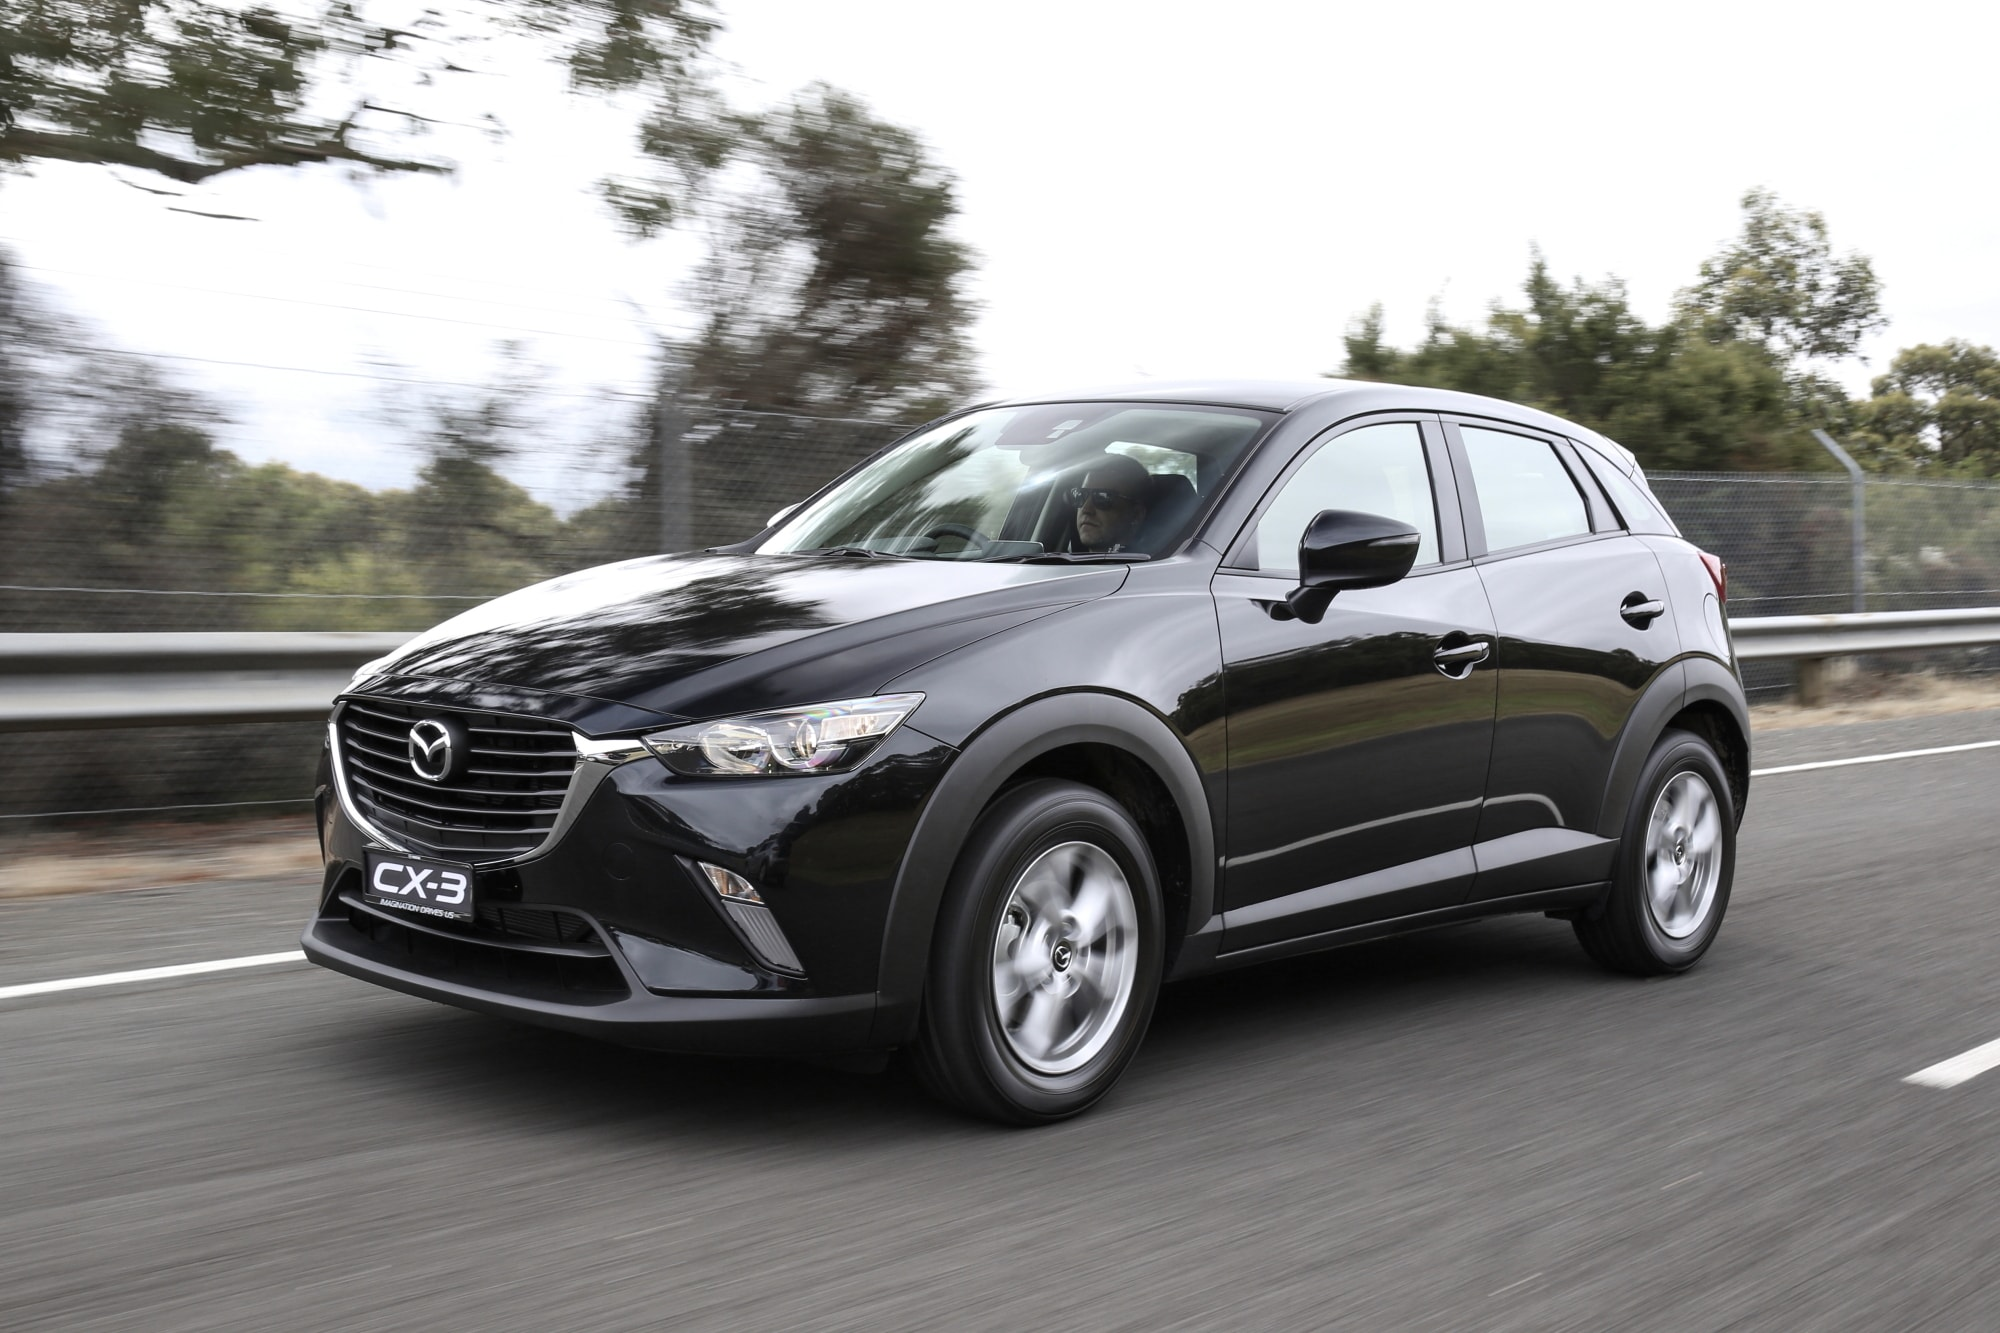 Mazda CX-3 Widescreen